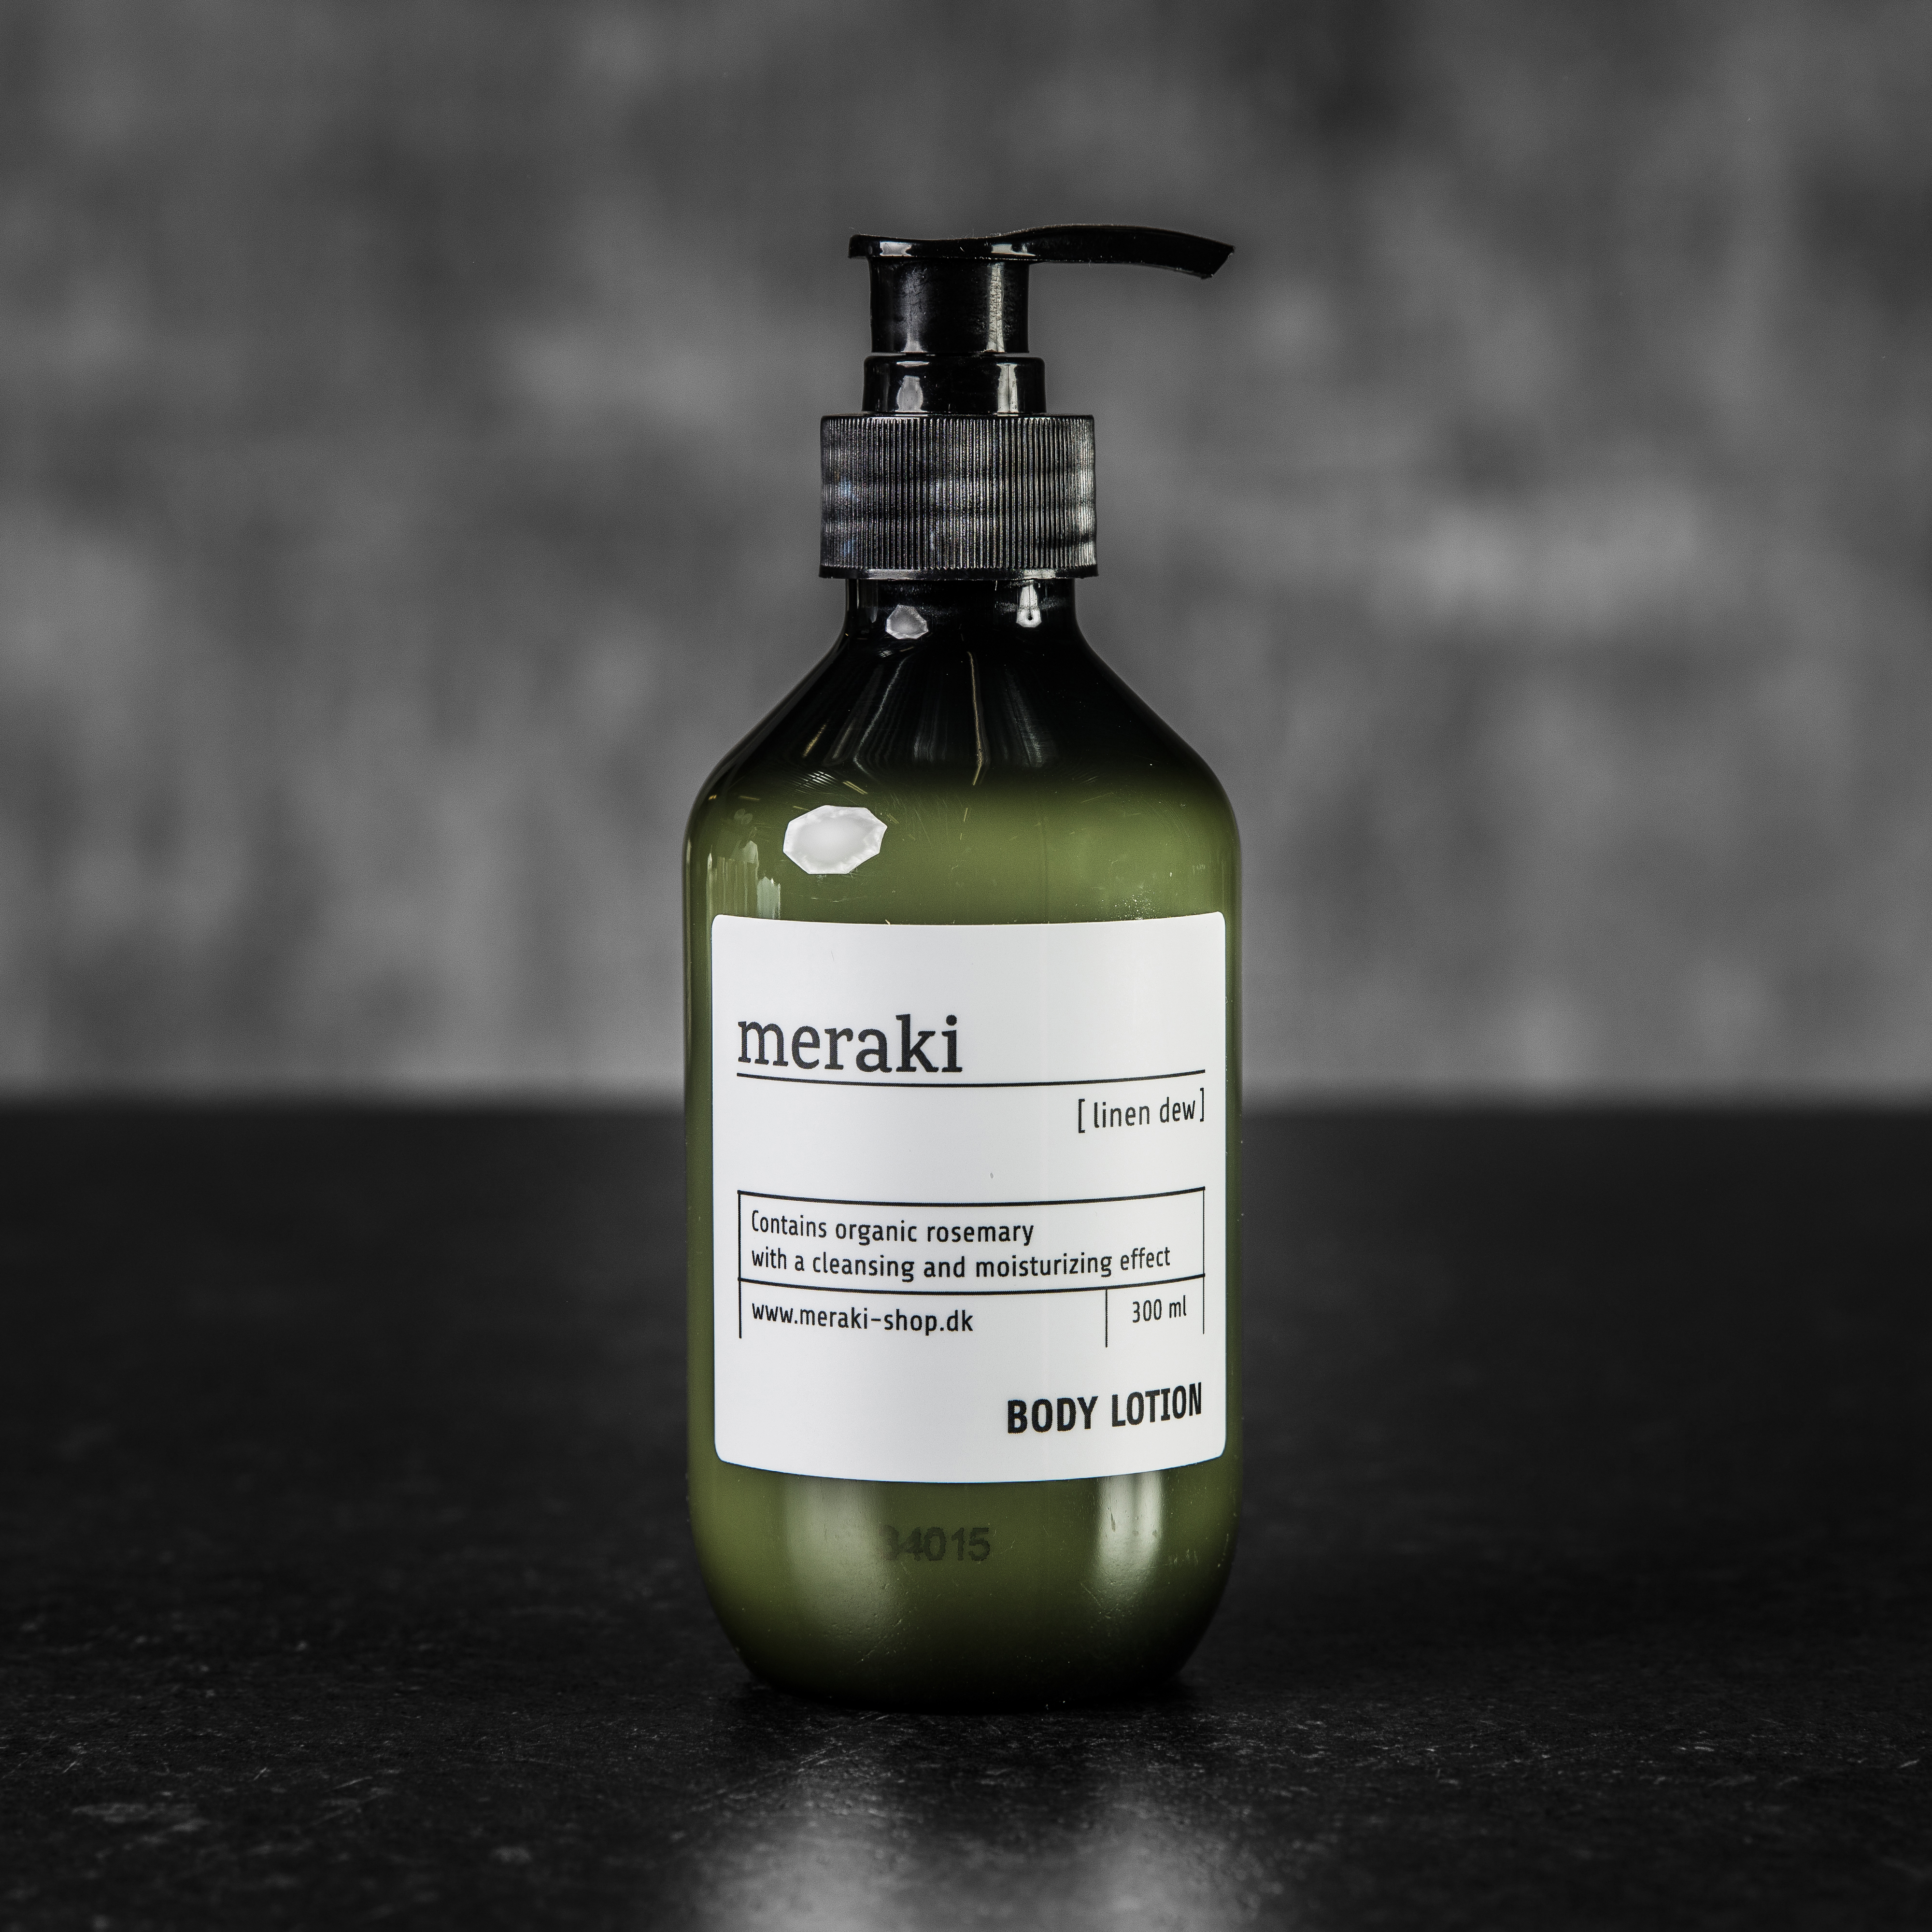 Meraki bodylotion